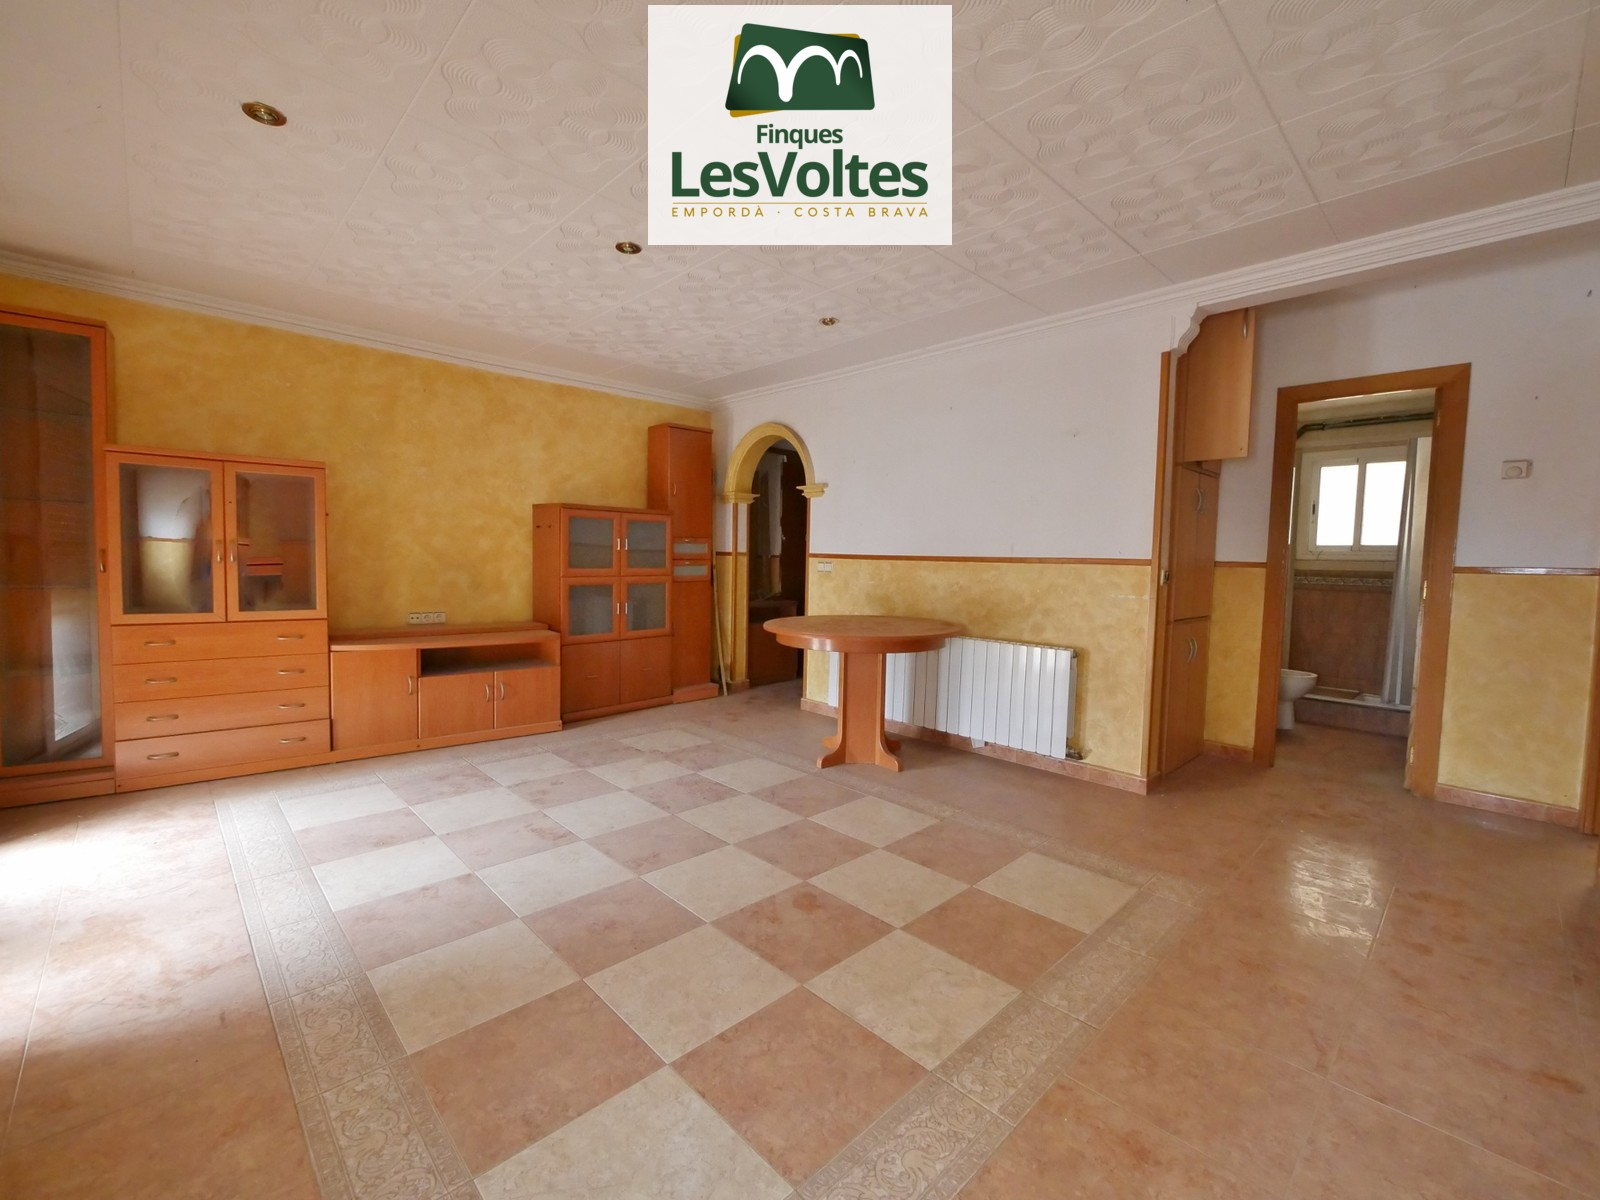 FLAT OF 70 M2 IN SECOND FLOOR WITH 2 BEDROOMS FOR SALE IN ULLÀ.